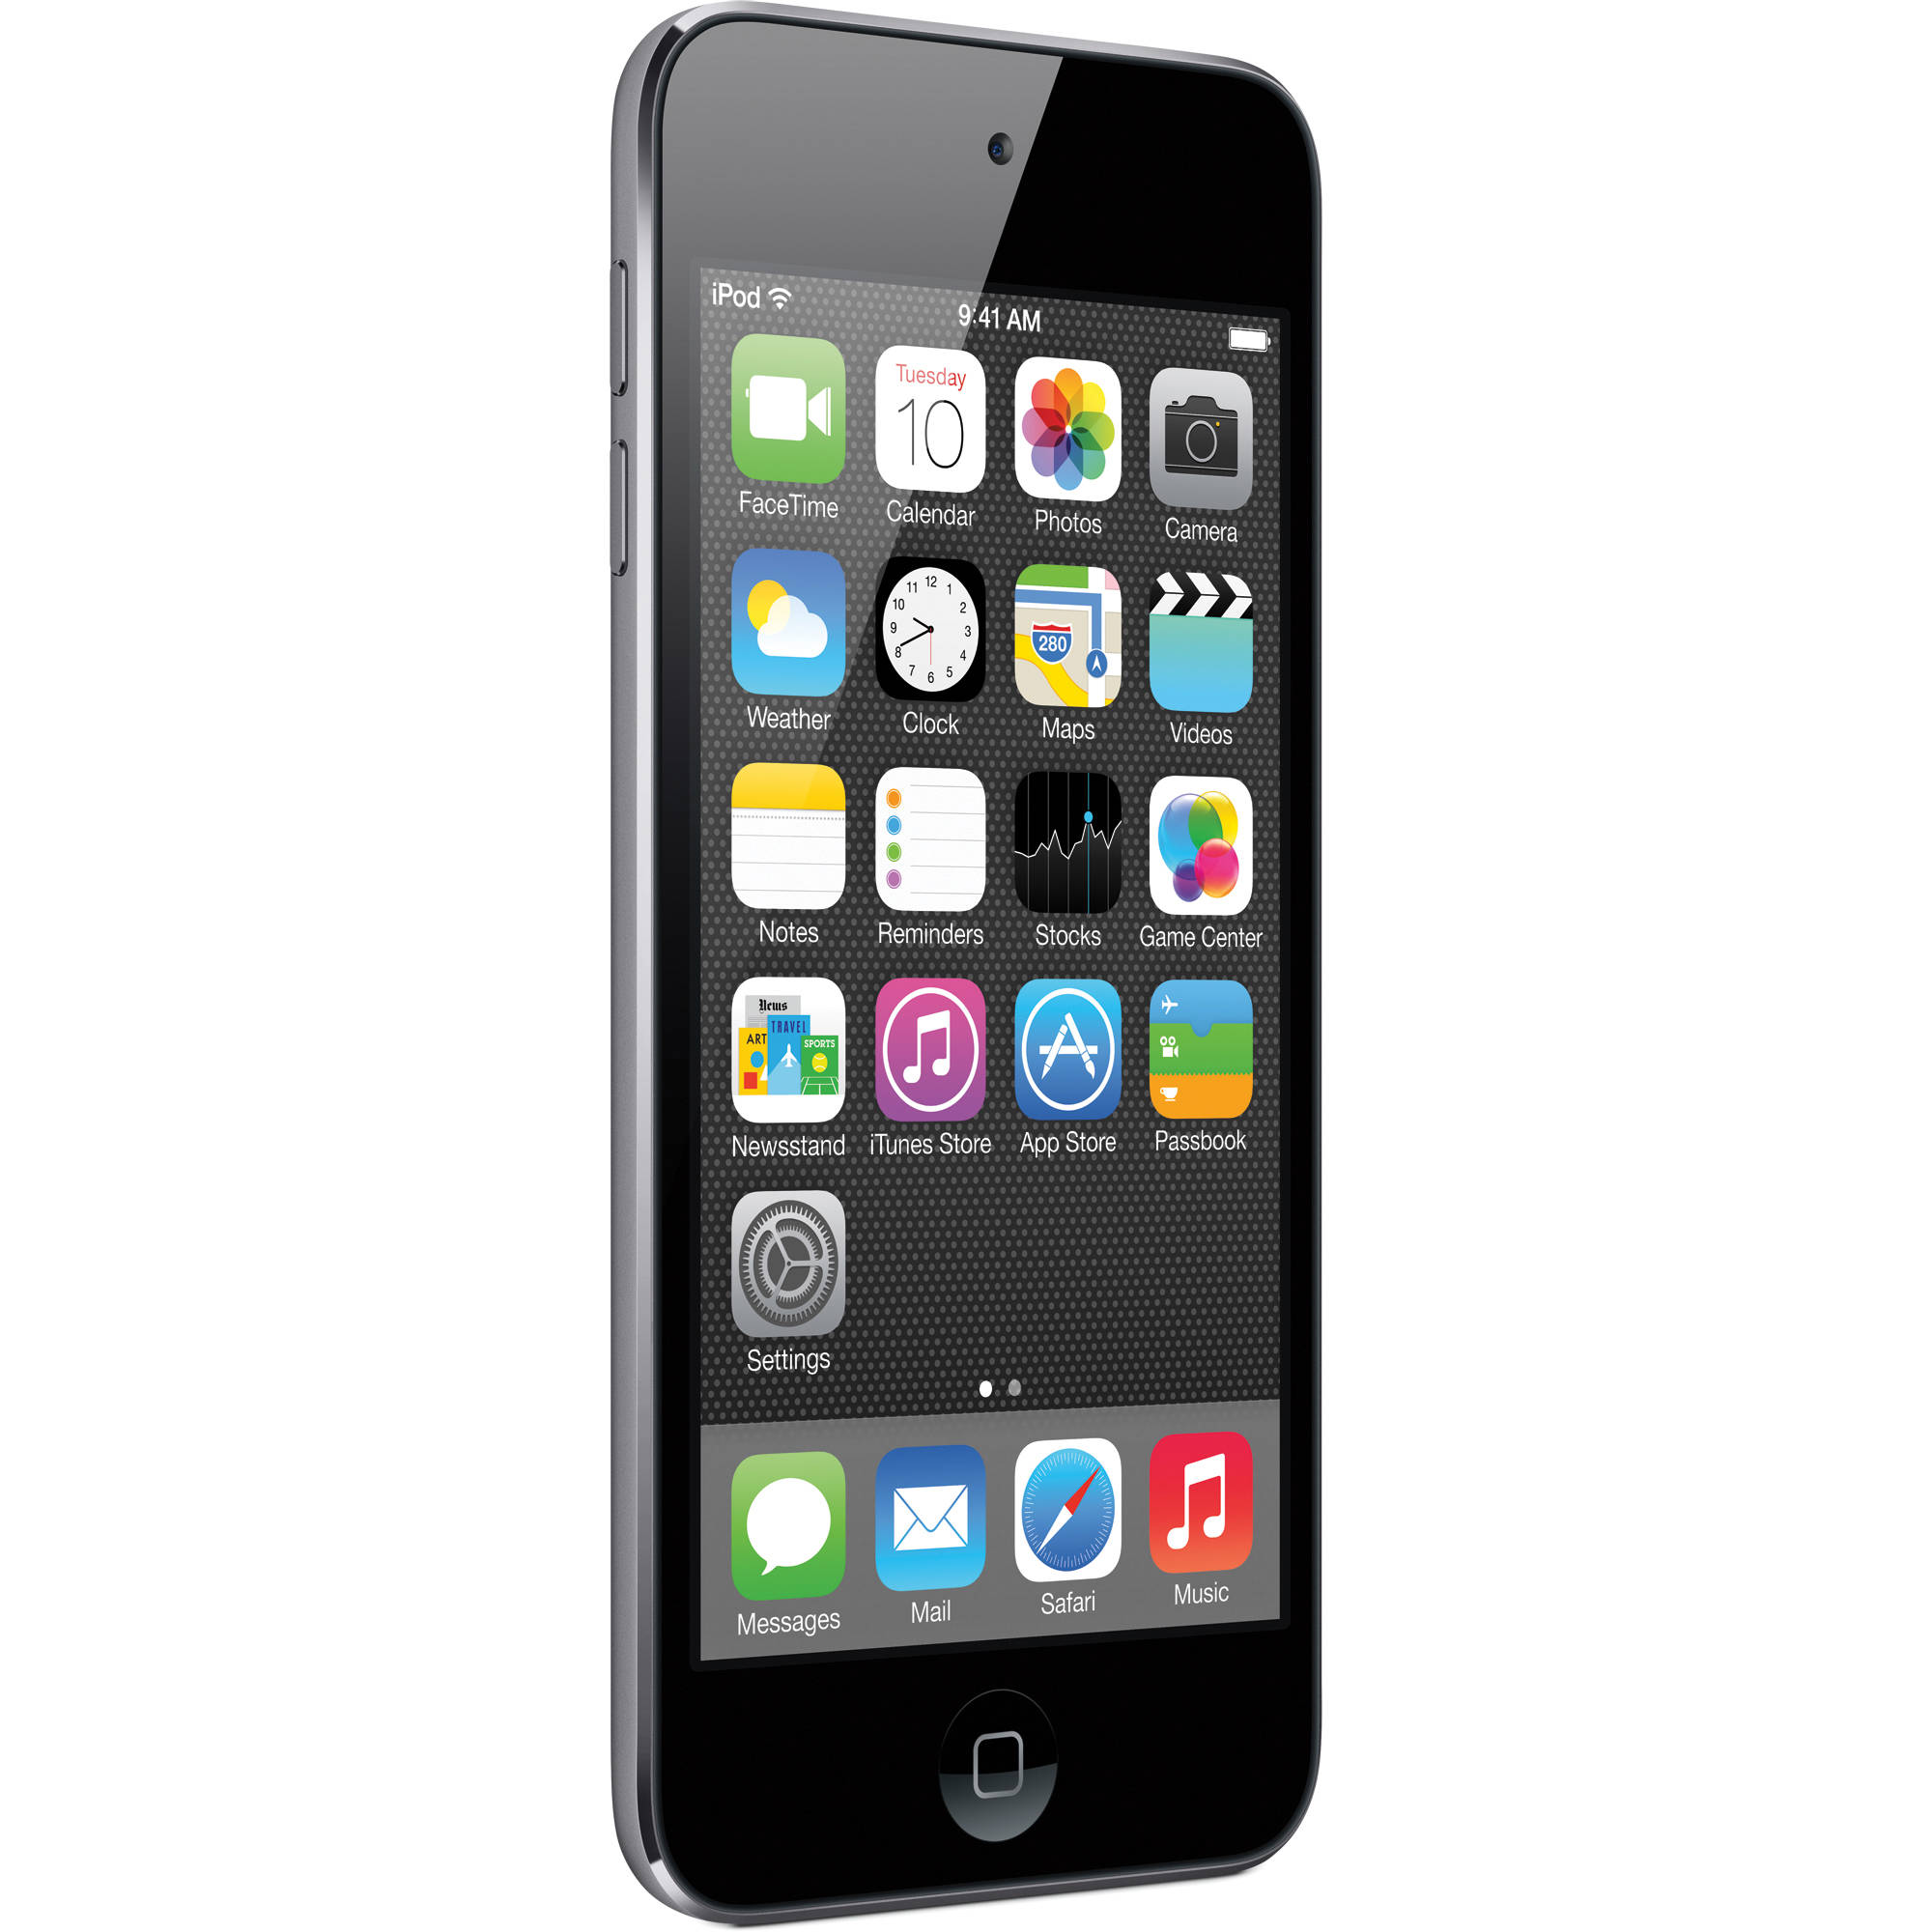 Apple 16GB iPod touch (Space Gray) (5th Generation) MGG82LL/A